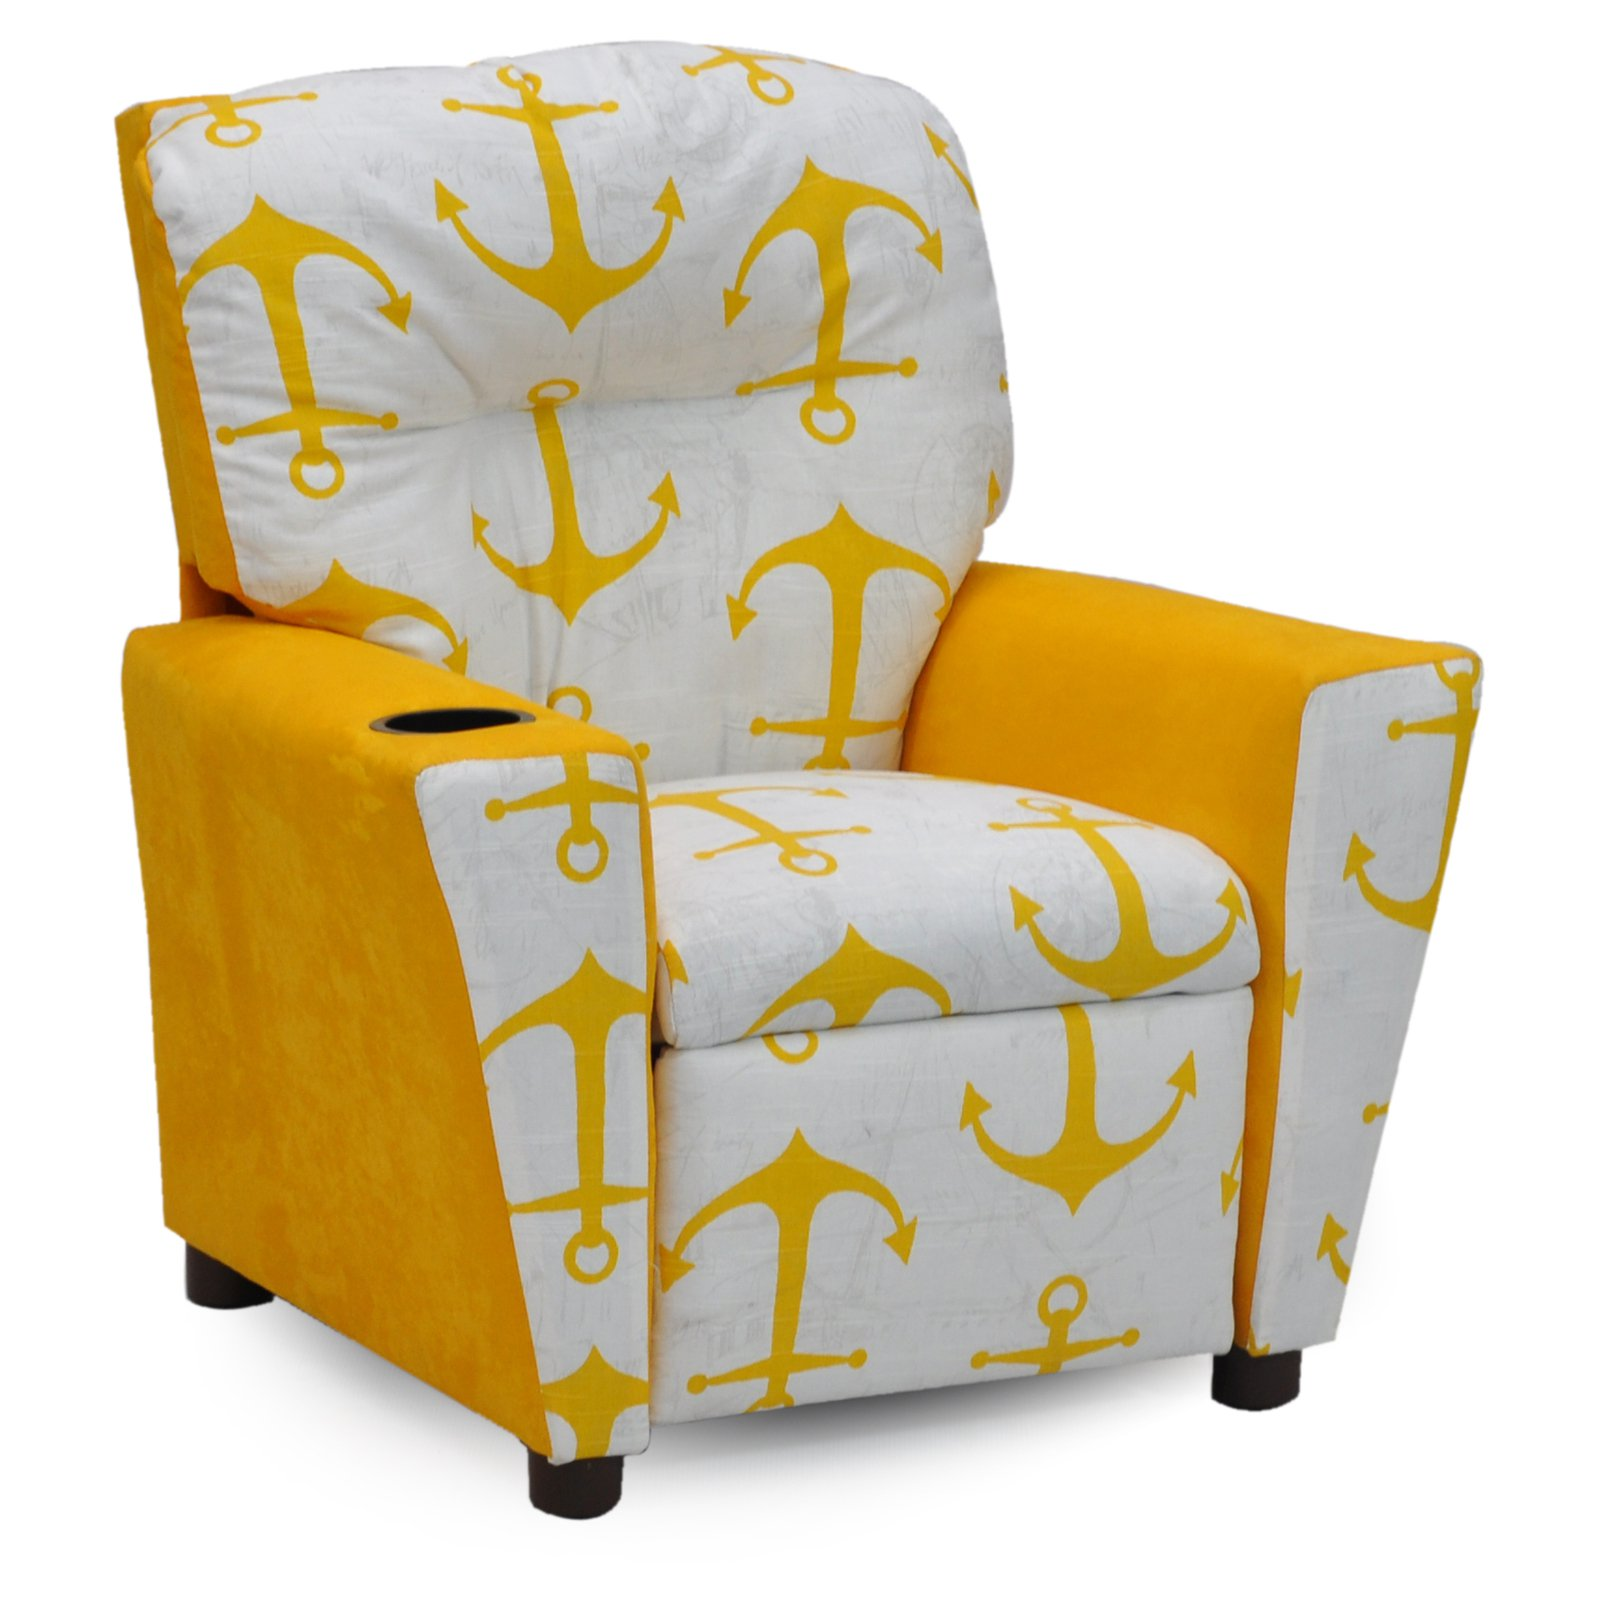 Kidz World Anchors Kids Recliner